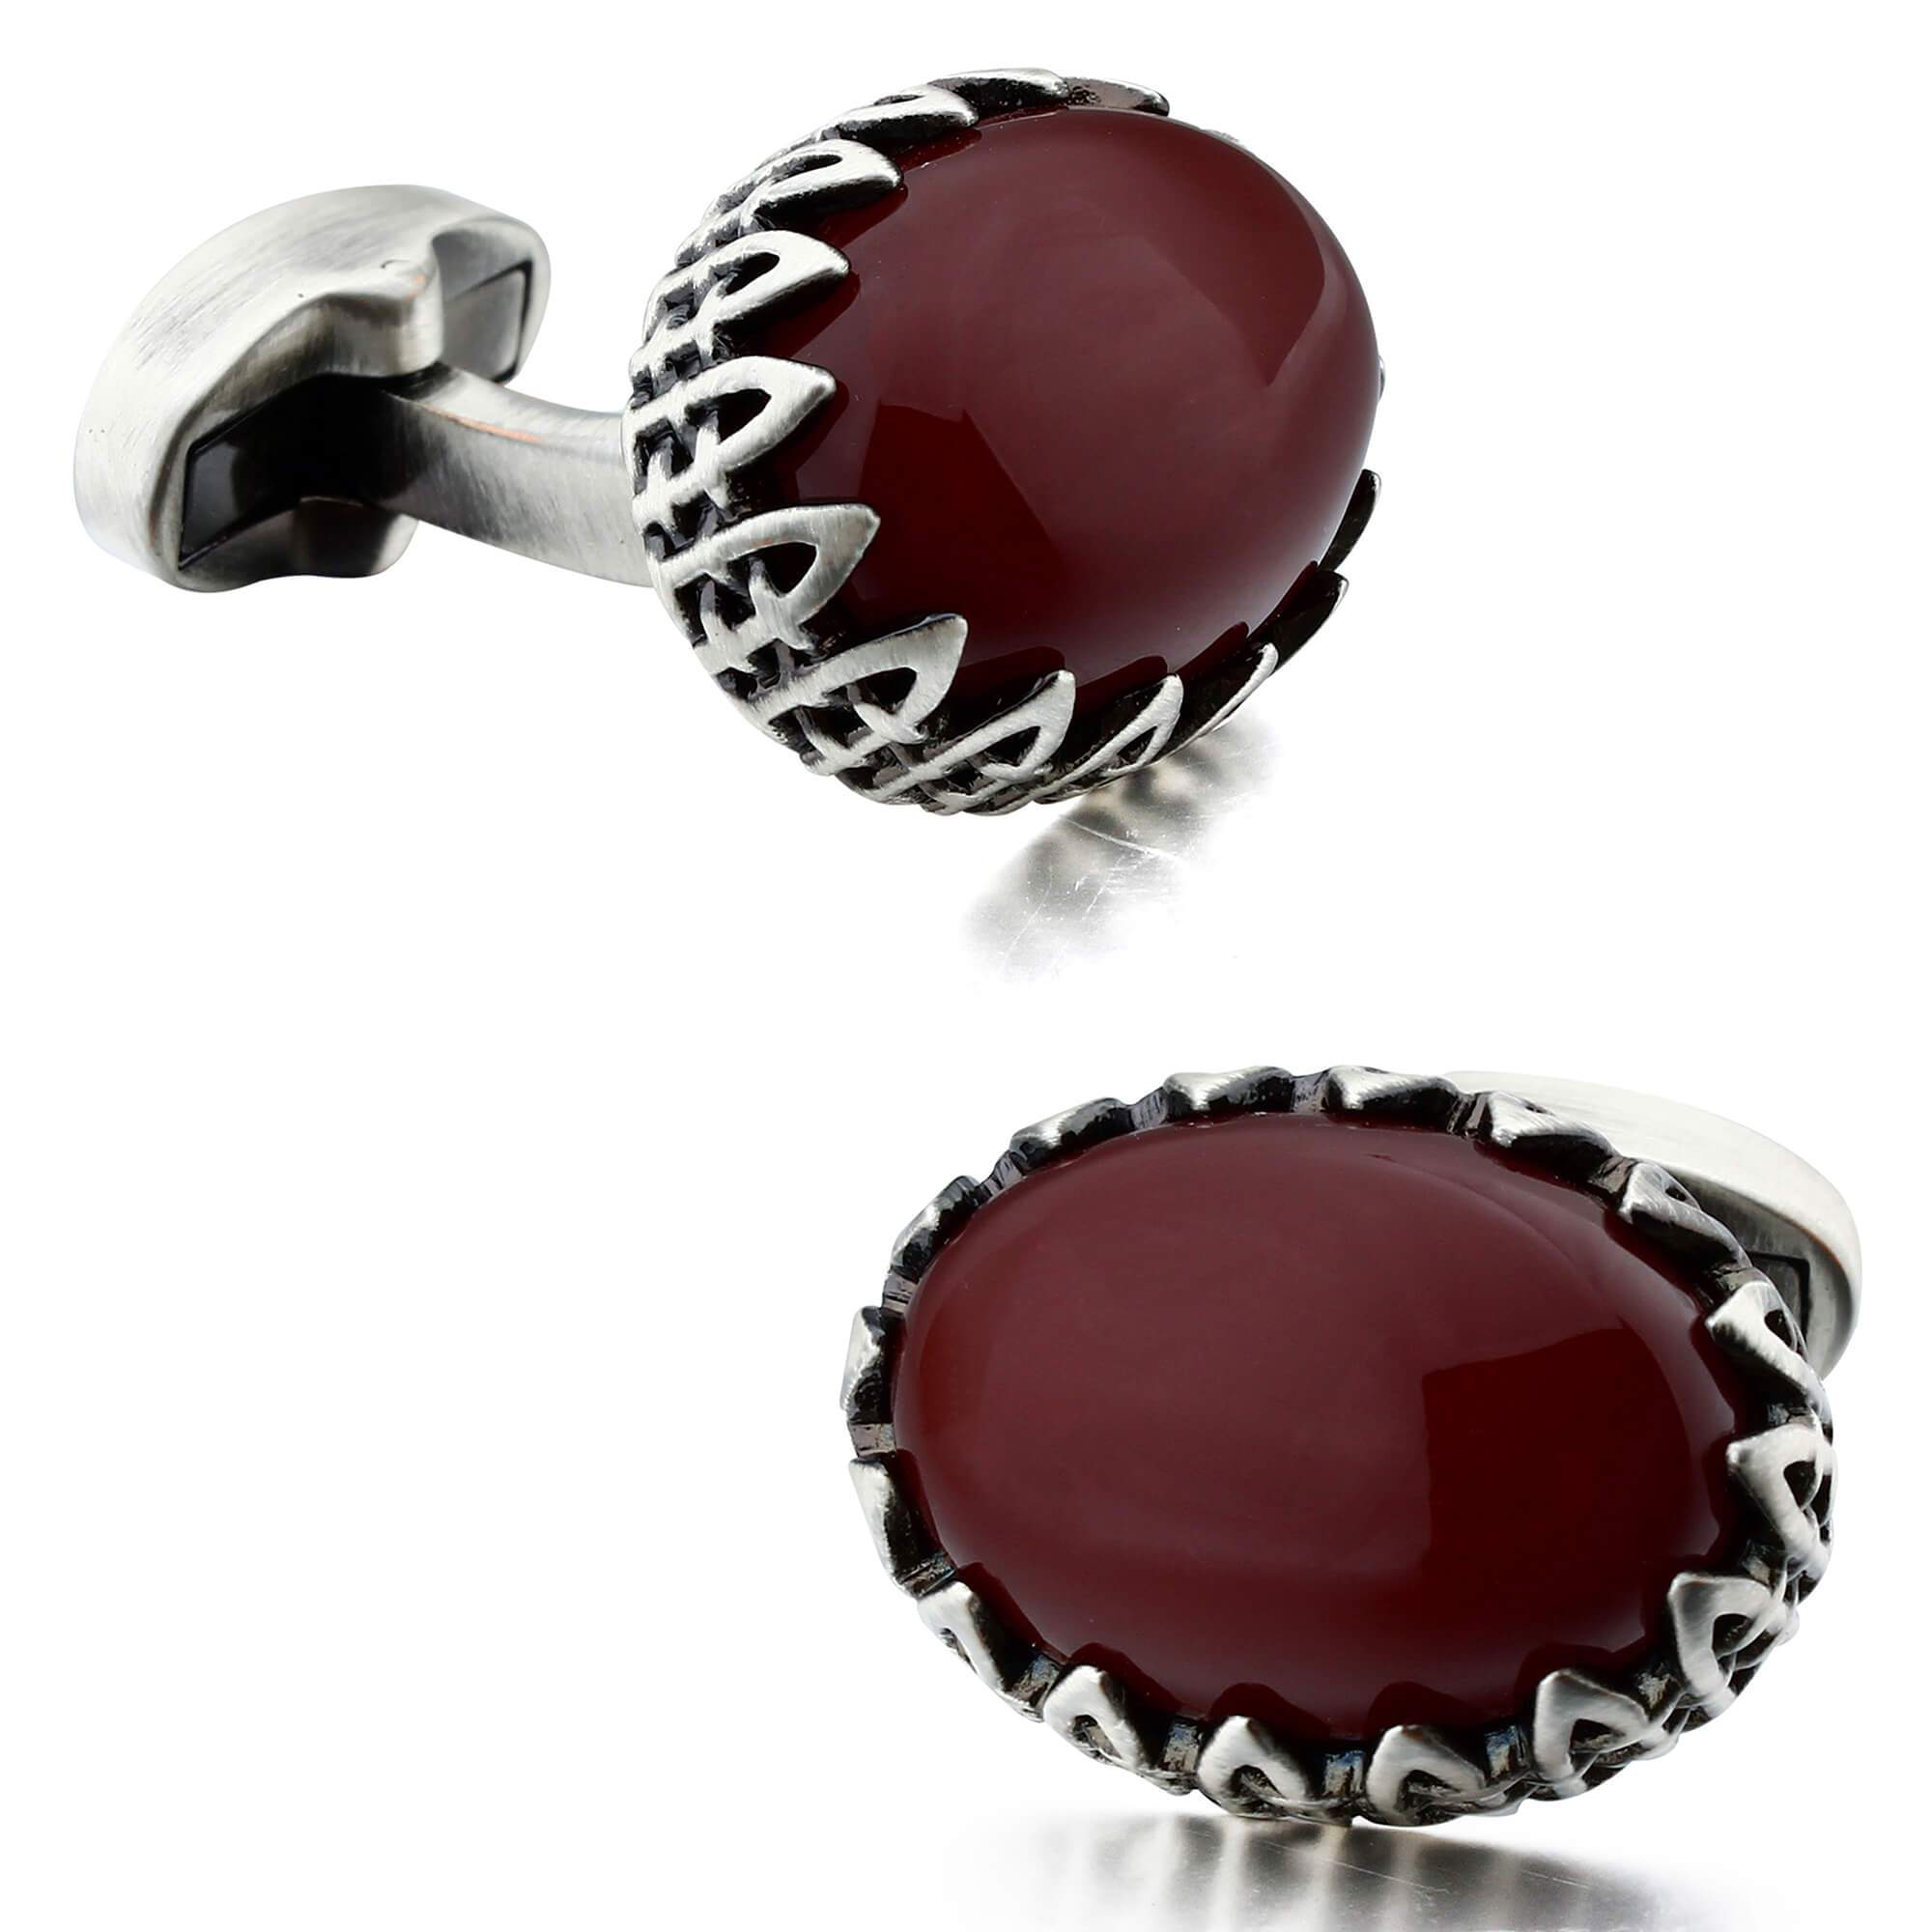 Red Agate in Antique Silver Cufflinks Classic & Modern Cufflinks Clinks Australia Default